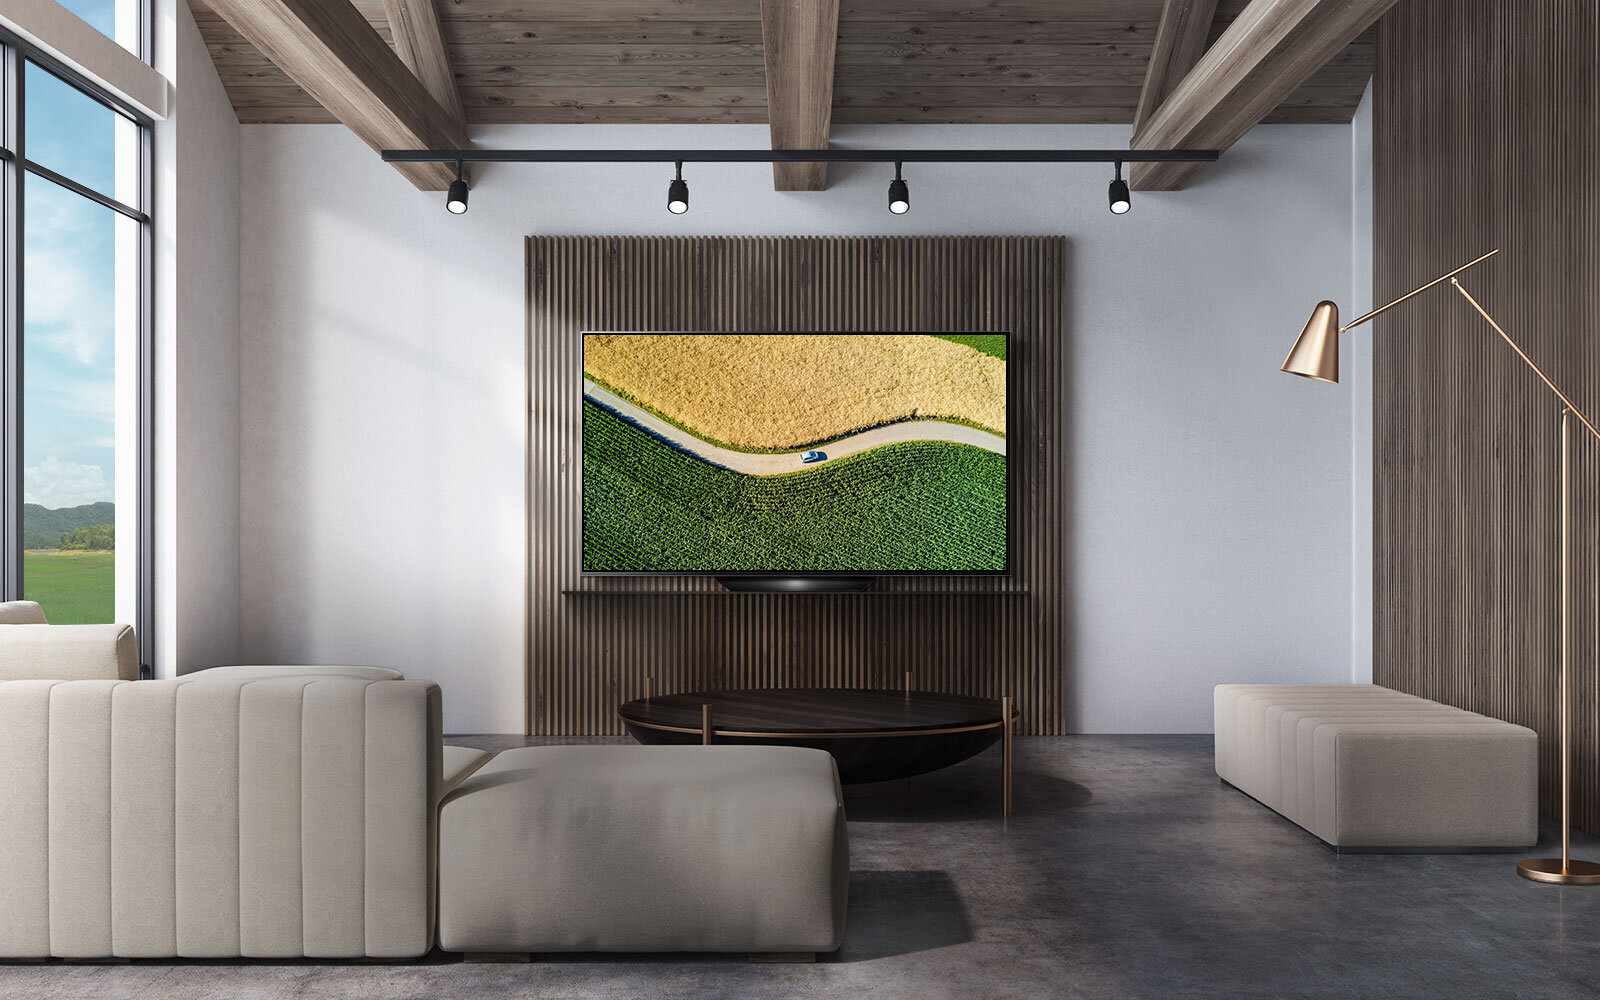 Minimalistic designBlends in to any space - The sophisticated and sleek design of the LG B9 OLED TV seamlessly integrates with your home. LG OLED TV adds a final touch of uniqueness to your carefully curated interior.